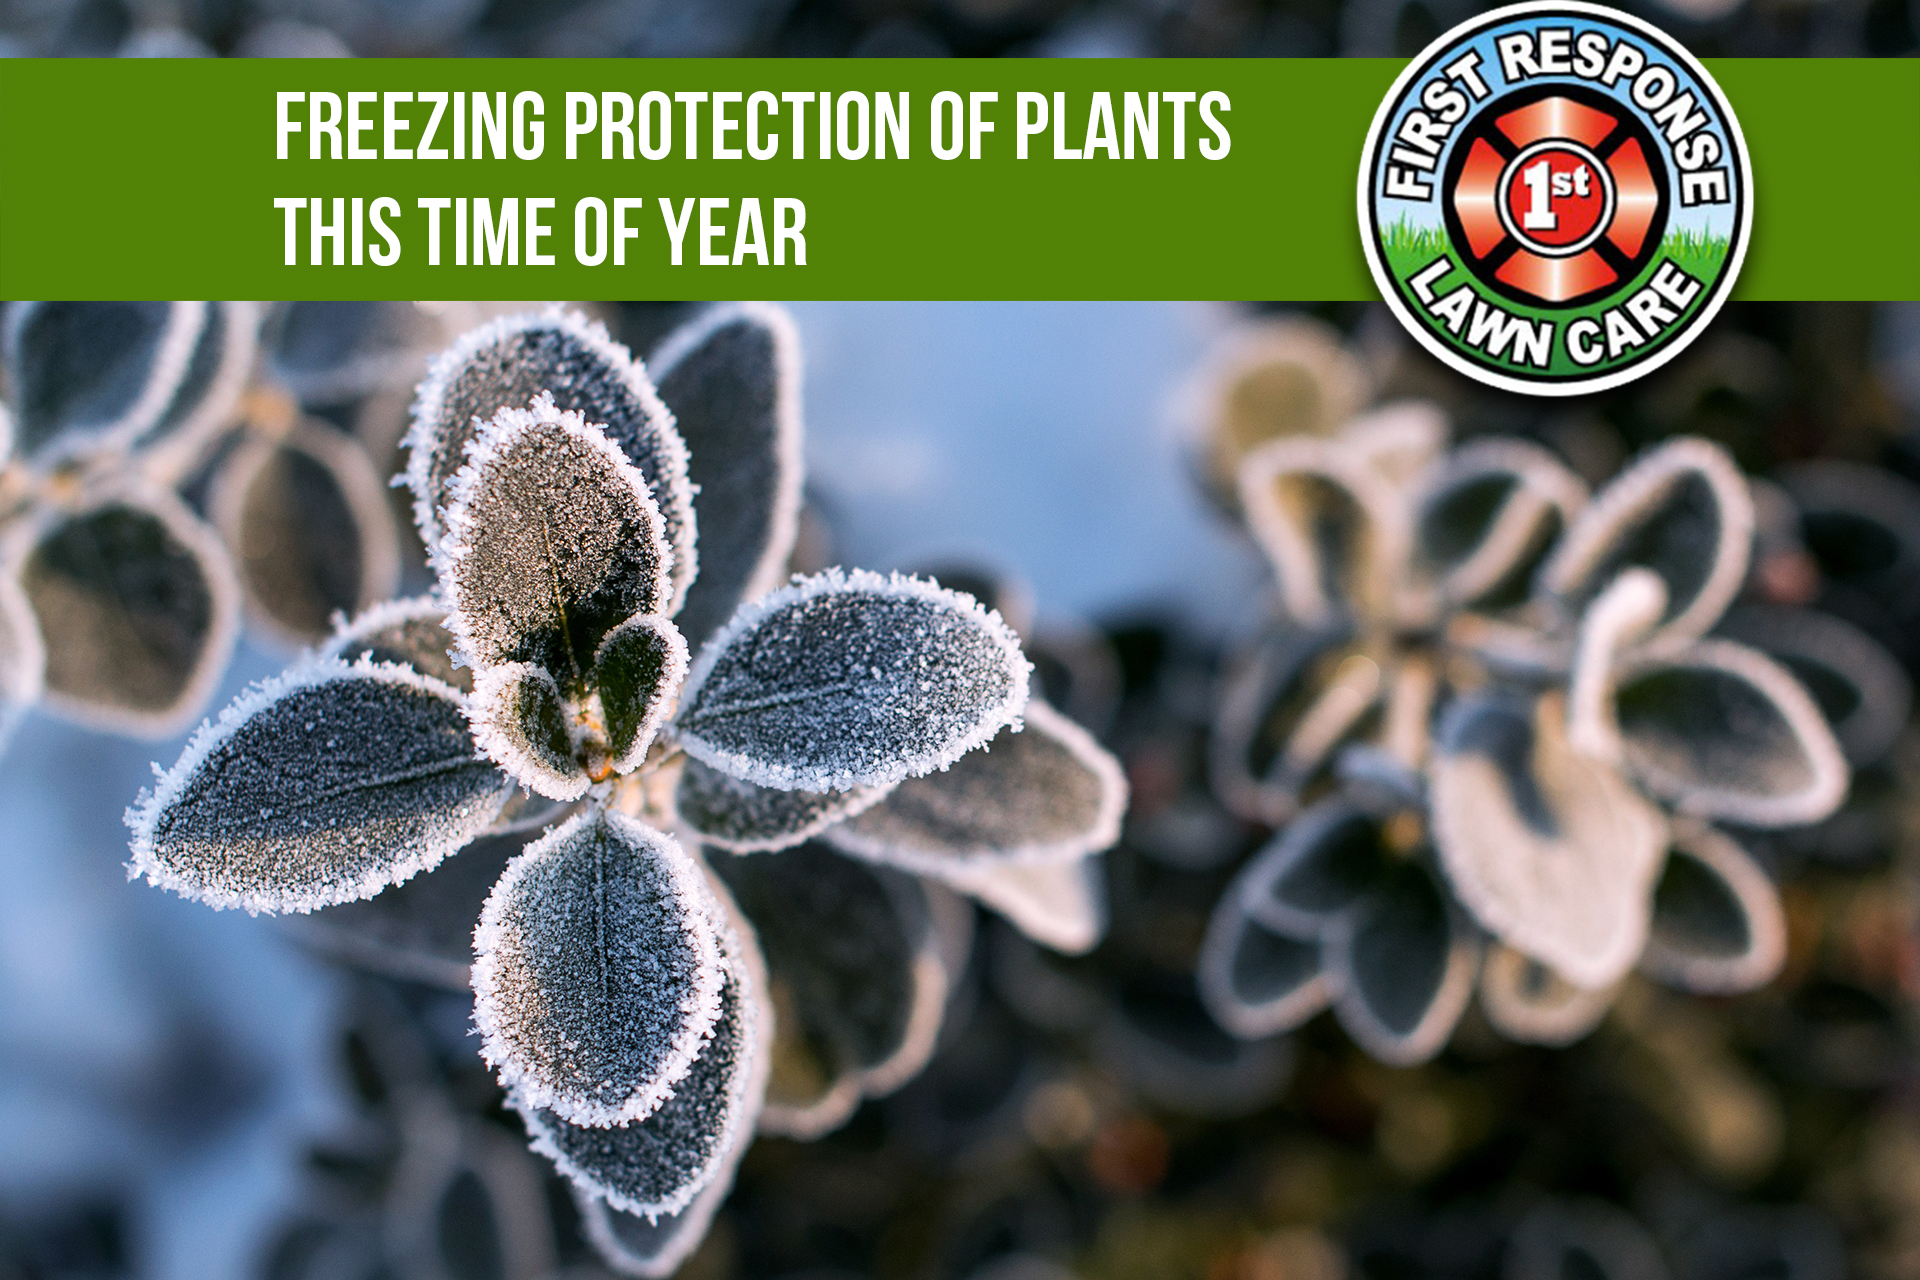 Freezing Protection of Plants this Time of Year